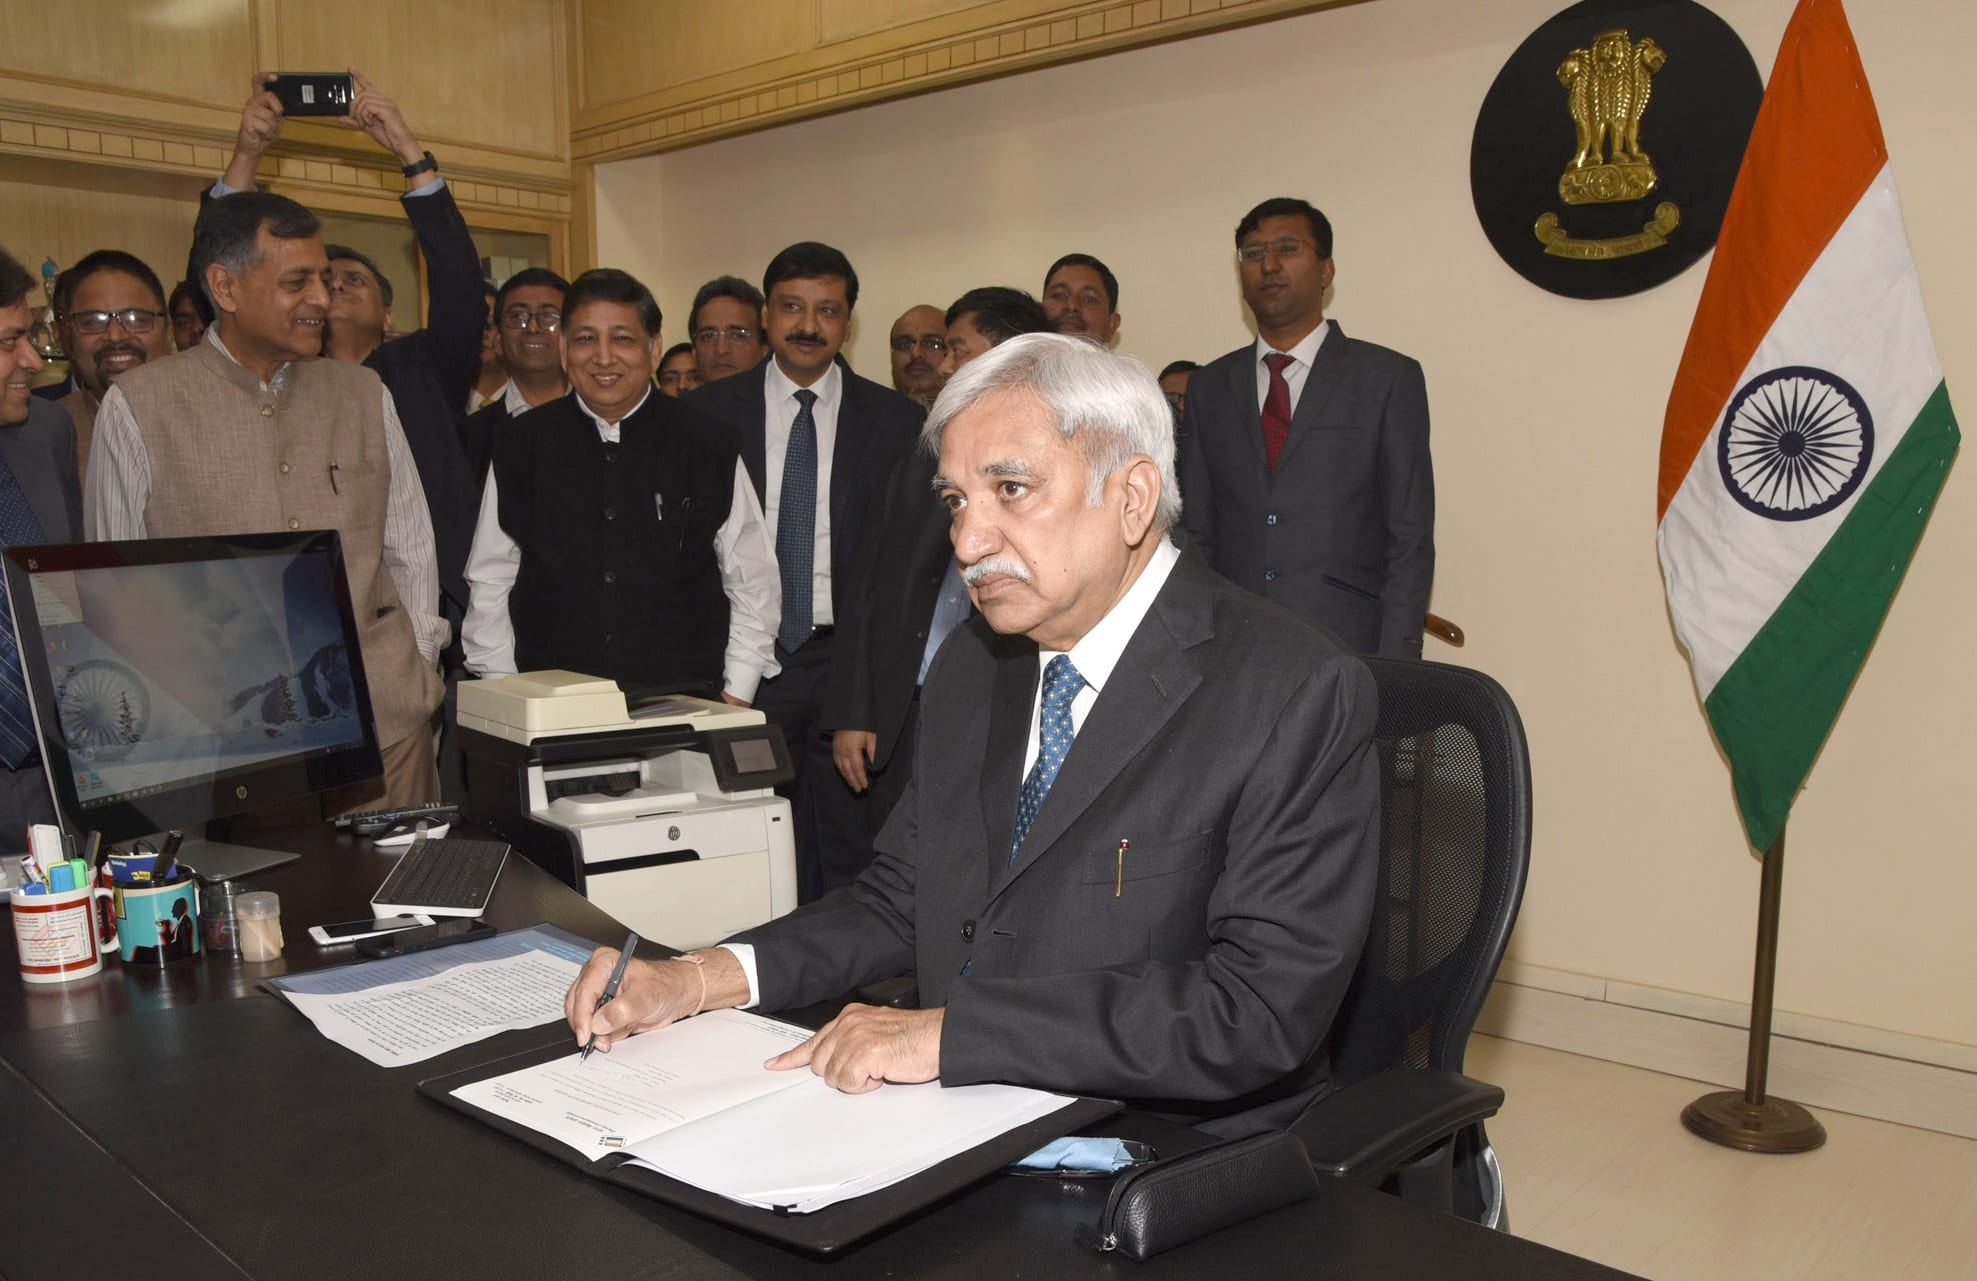 Sunil Arora takes charge as 23rd Chief Election Commissioner (CEC)